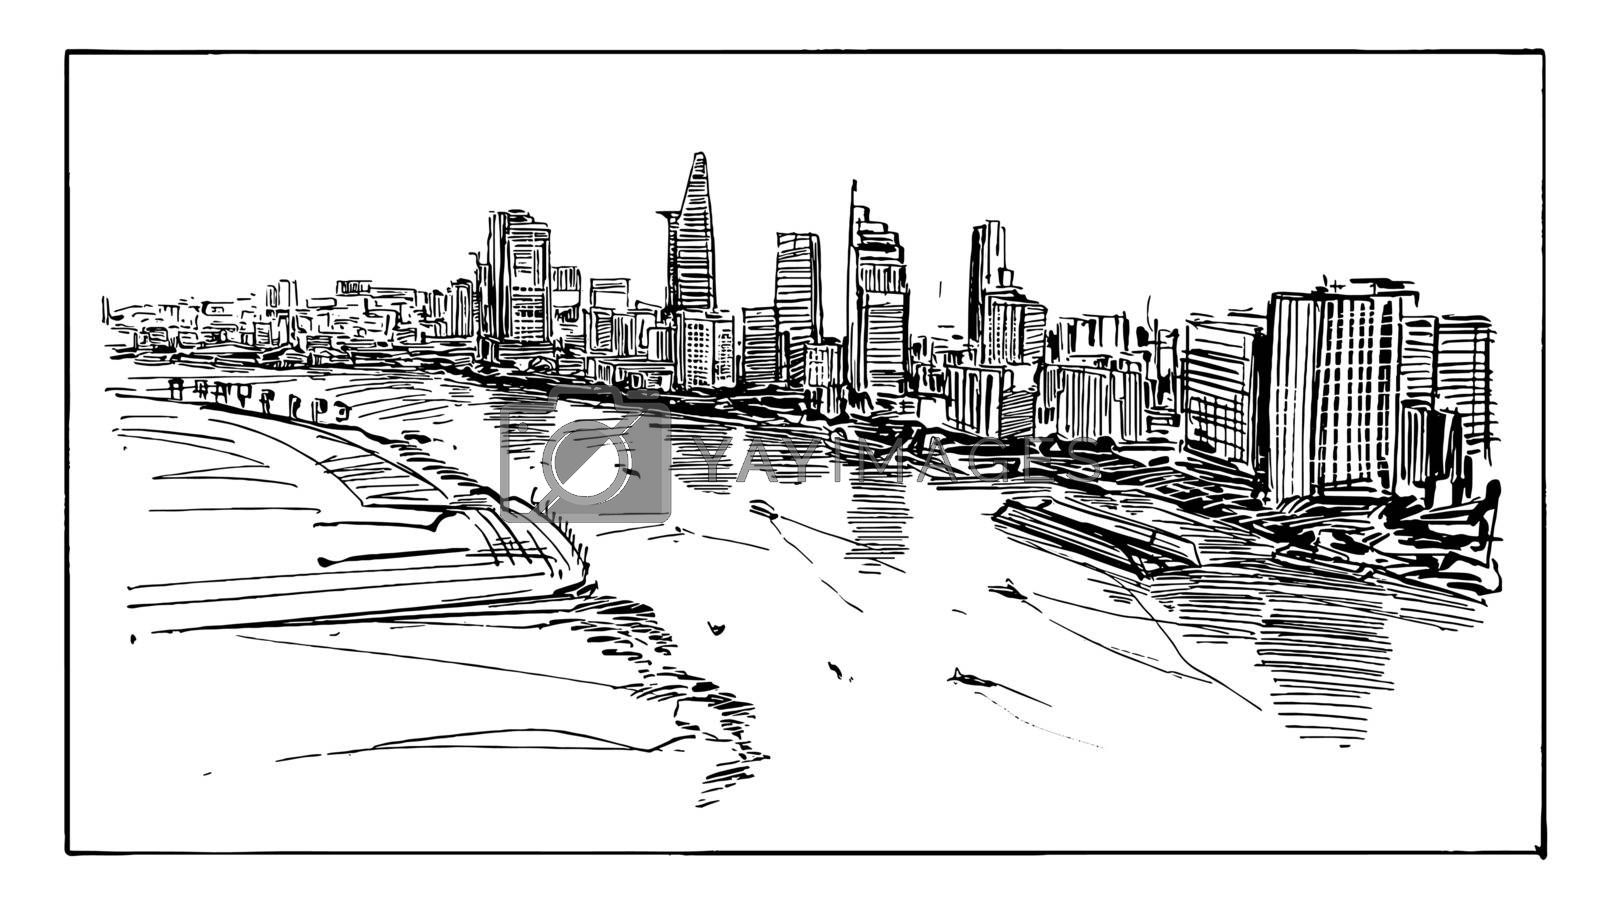 Drawing of the Ho Chi Minh cityscape